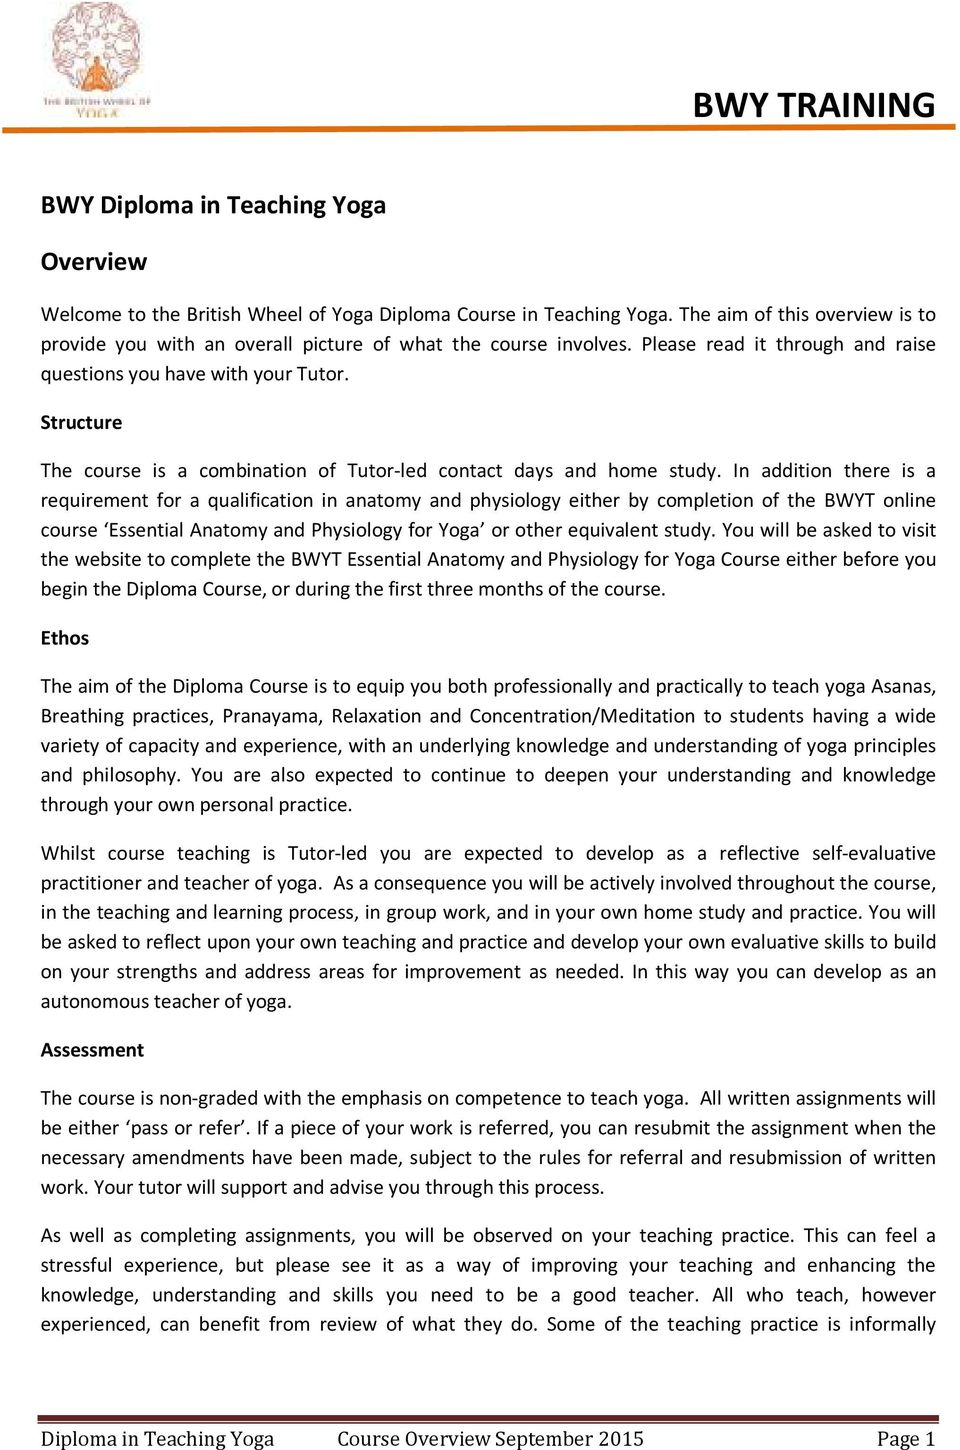 BWY TRAINING. BWY Diploma in Teaching Yoga. Overview - PDF